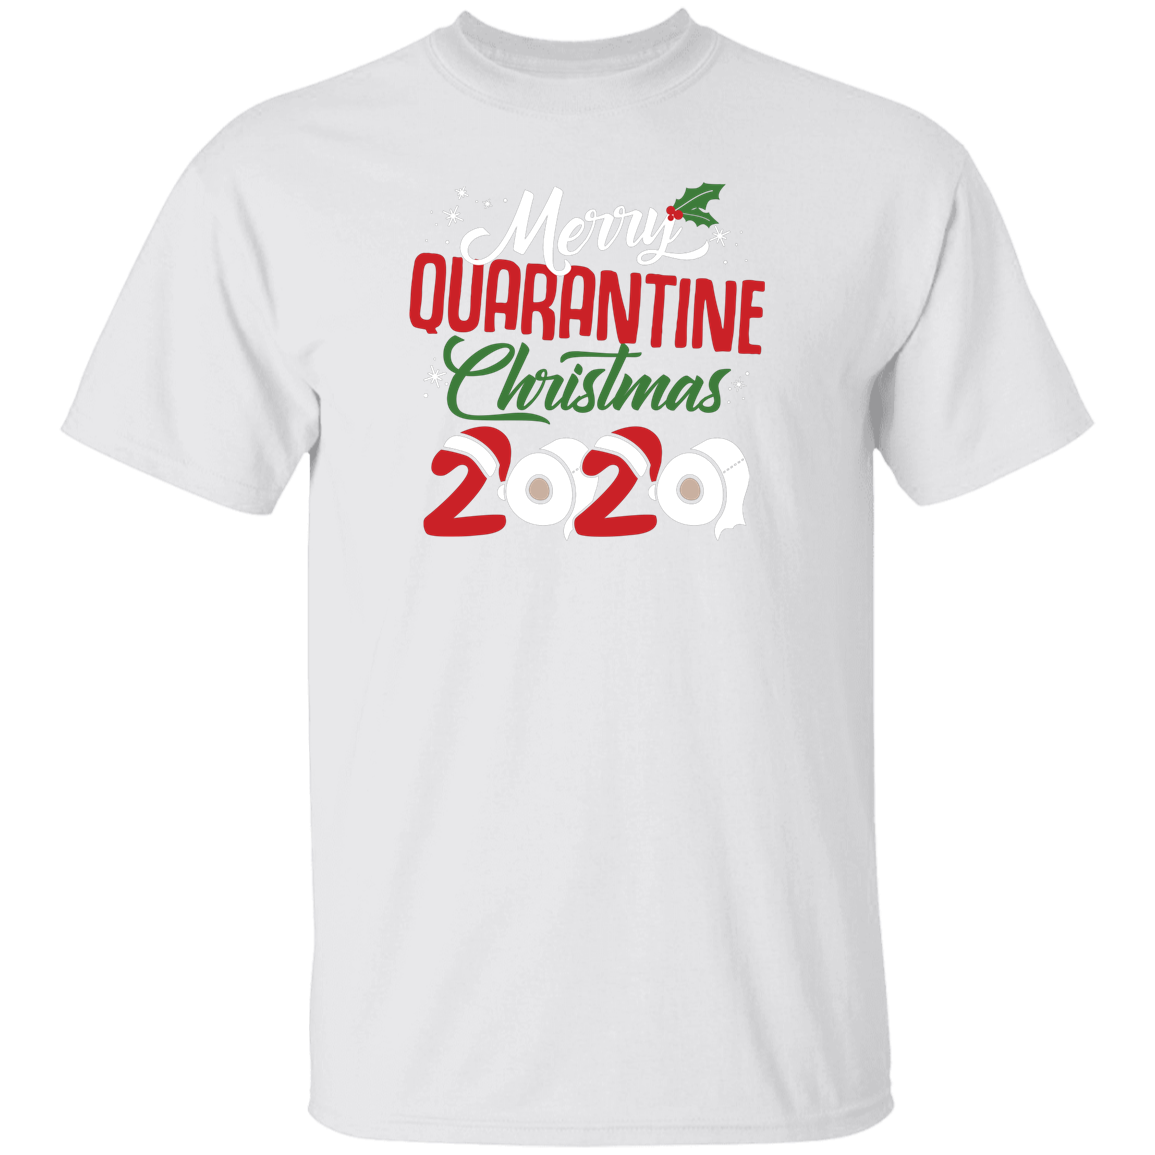 Merry Quarantine Christmas Family Shirts - CSCC107